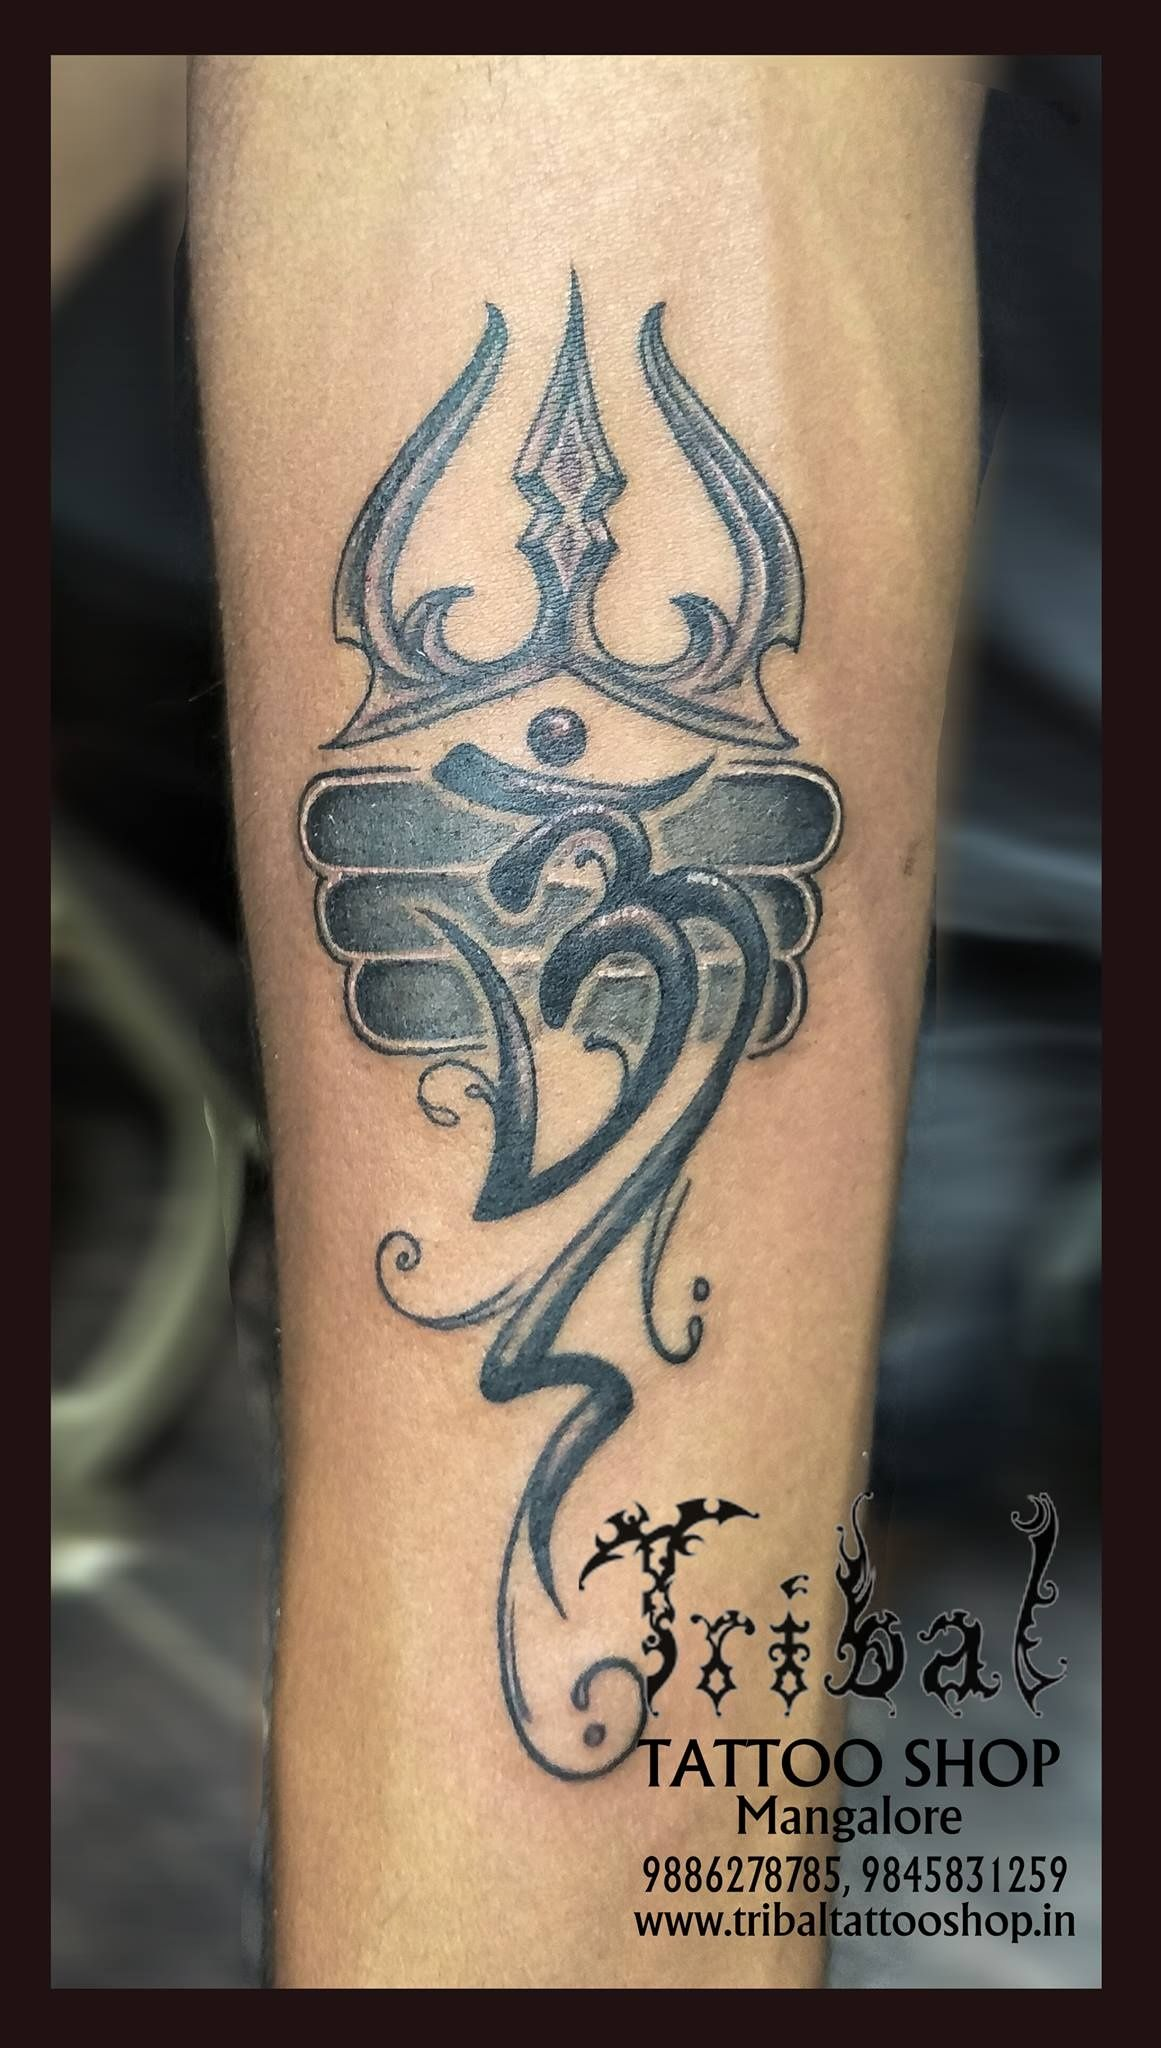 Pin By Muthu Mani Mkn On Tattoos Shiva Tattoo Design Shiva Tattoo Tattoos